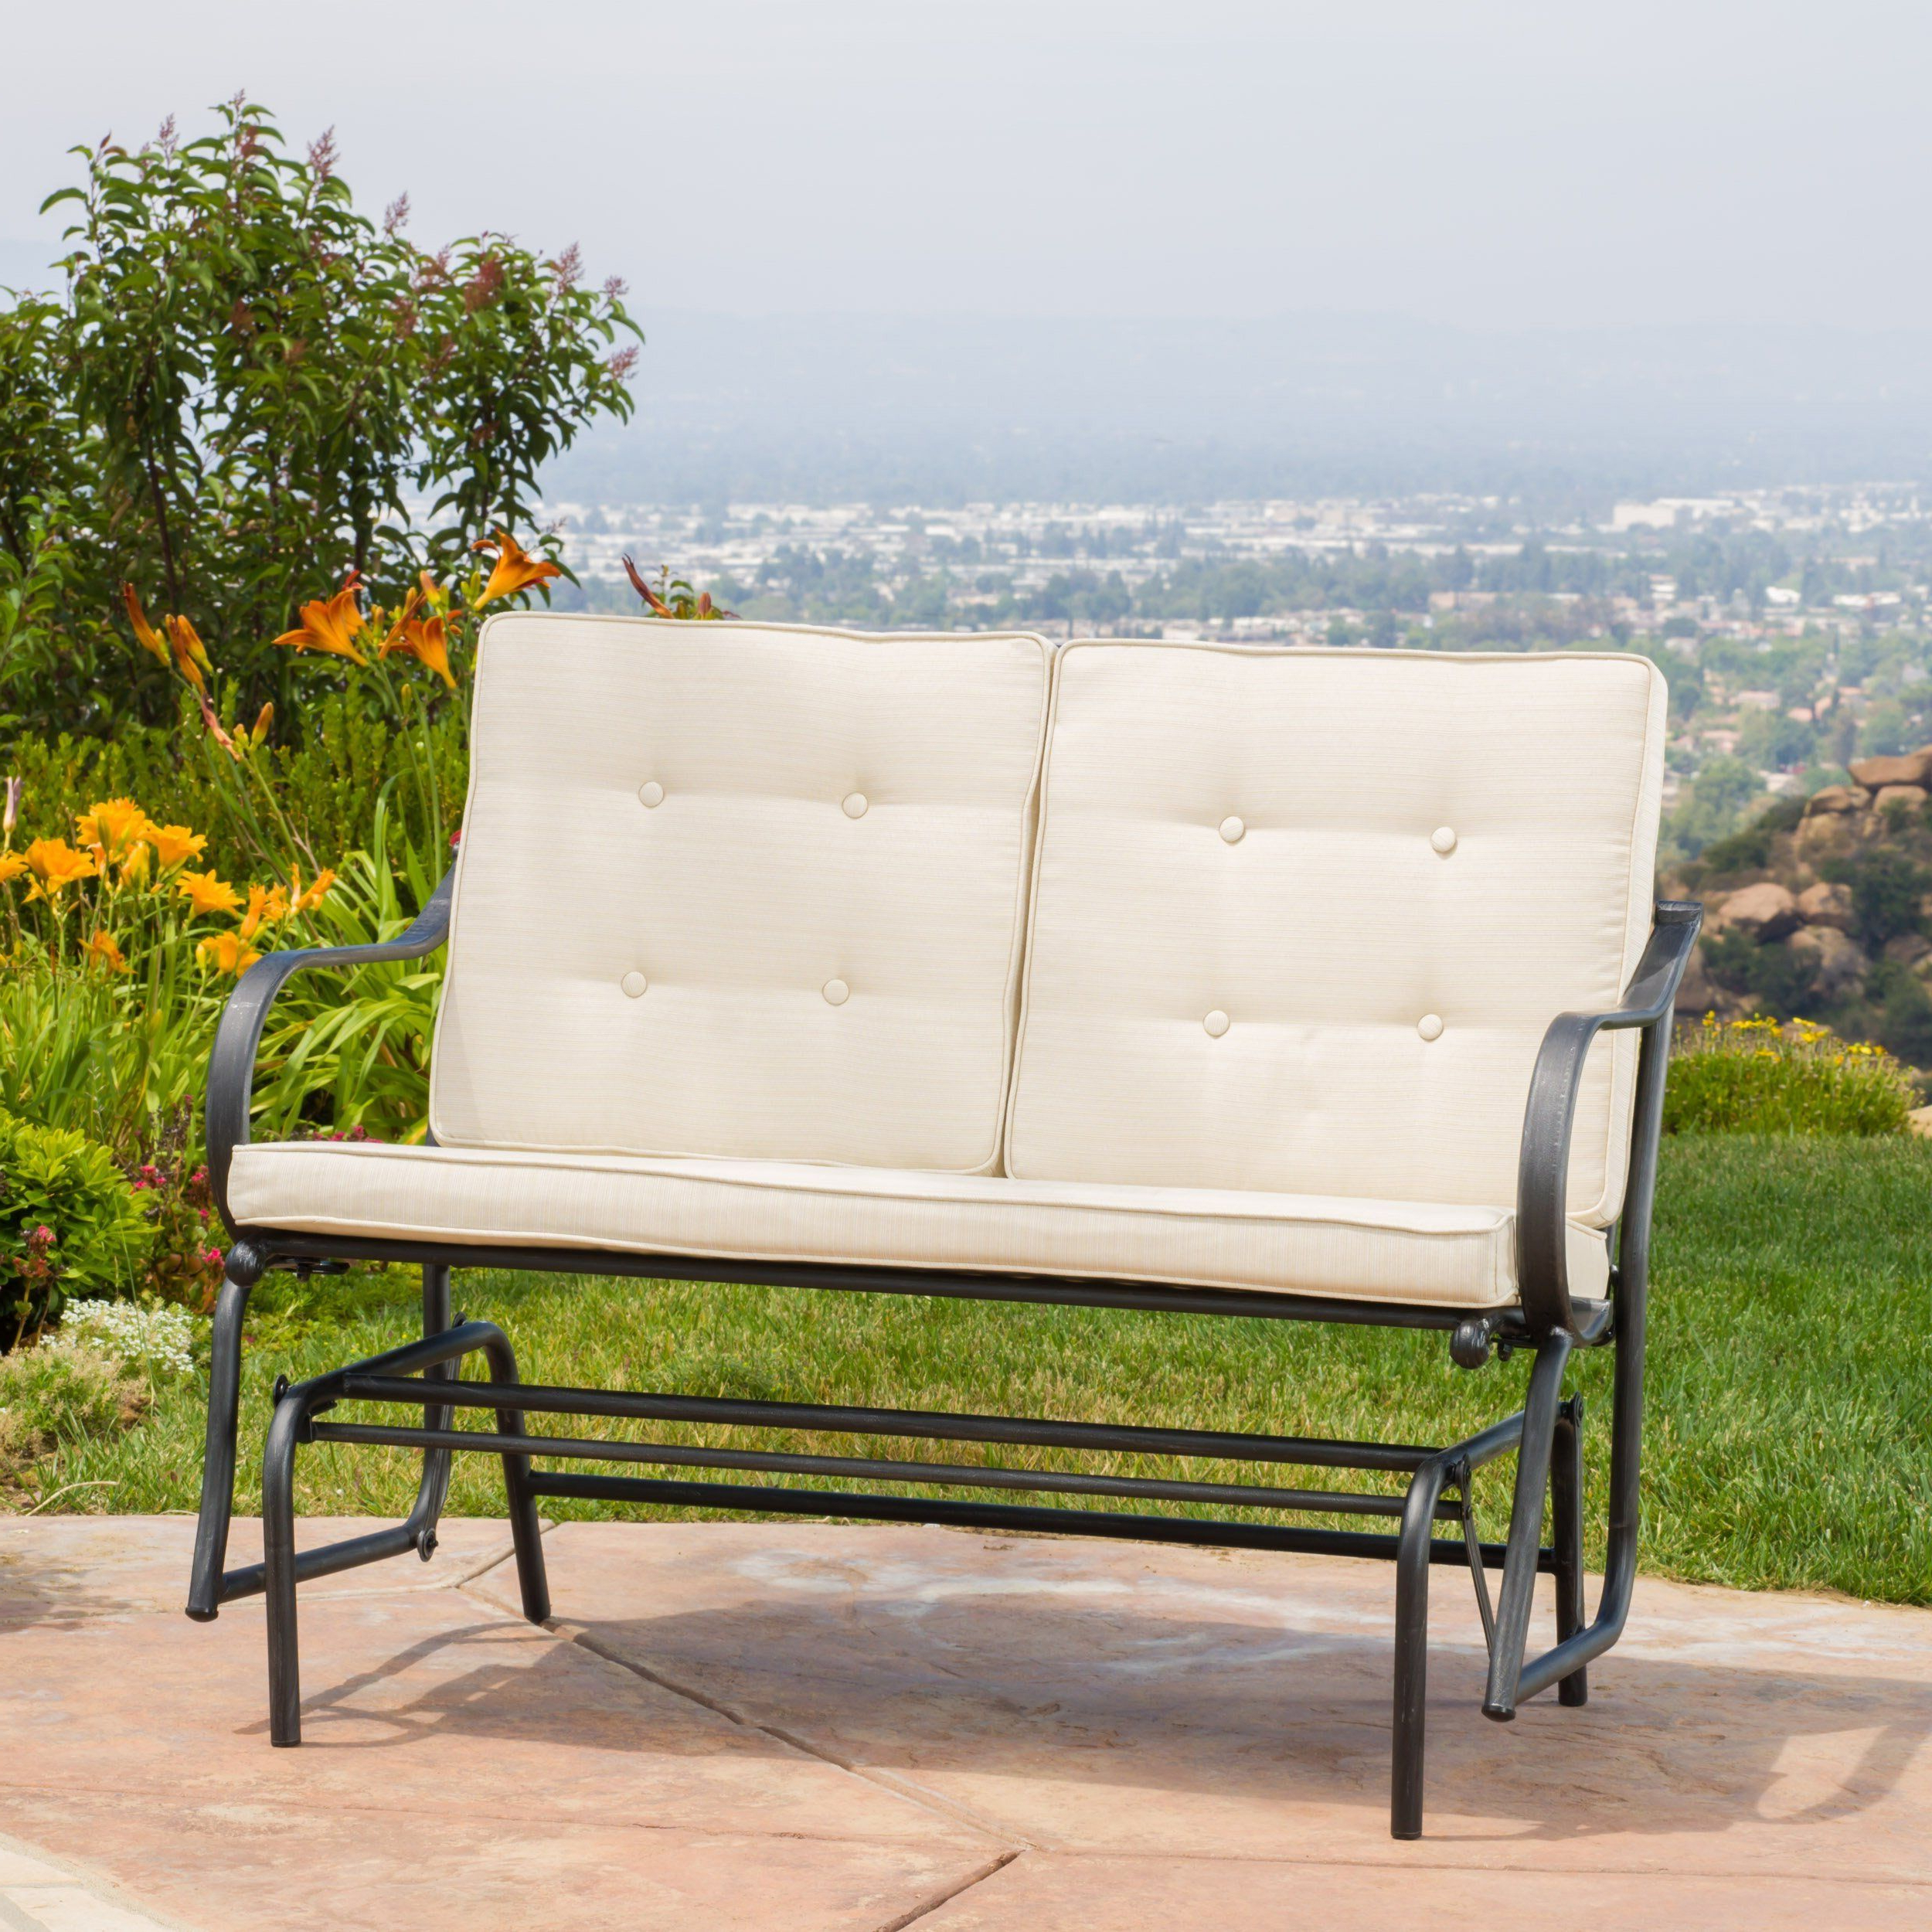 Most Recent Outdoor Patio Metal Rocker Glider Bench With Beige Cushions With Regard To Rocking Glider Benches With Cushions (Gallery 1 of 30)